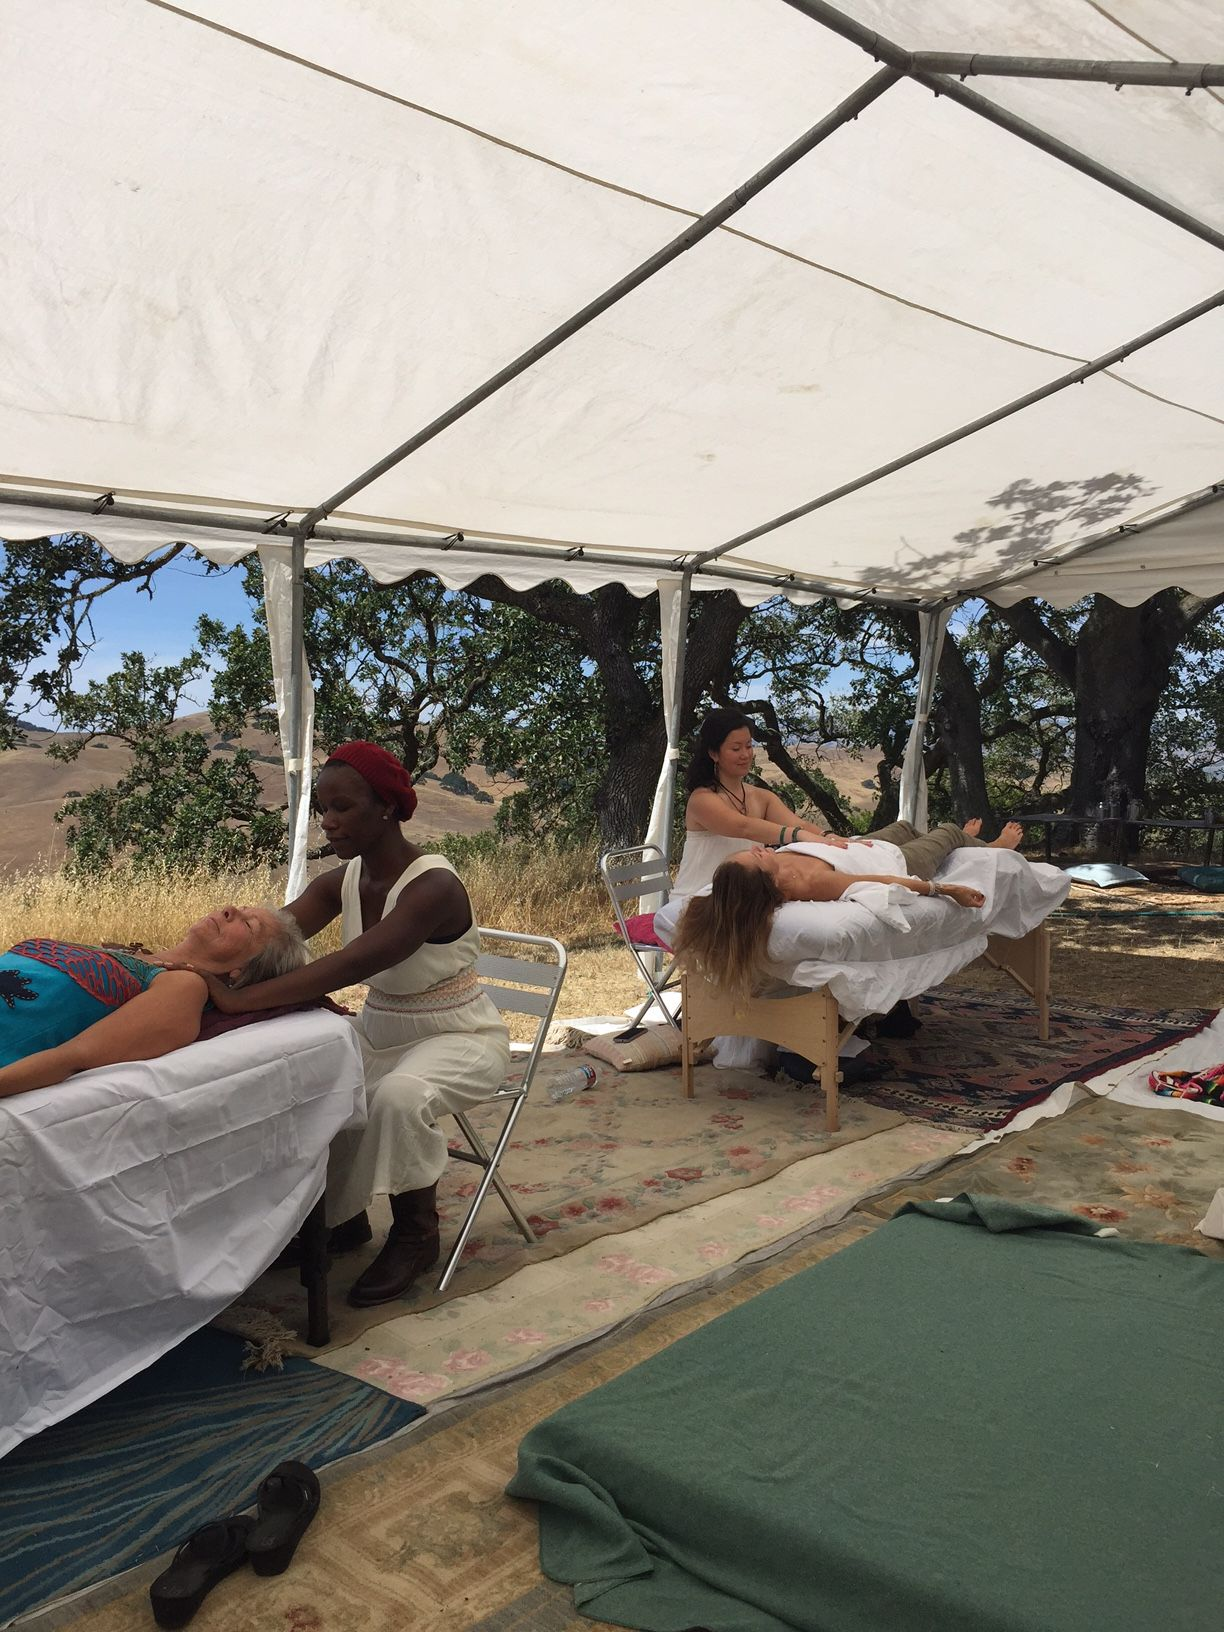 Reiki healing by the Reiki Coalition at the 2015 Women's Visionary Congress in Petaluma, CA.